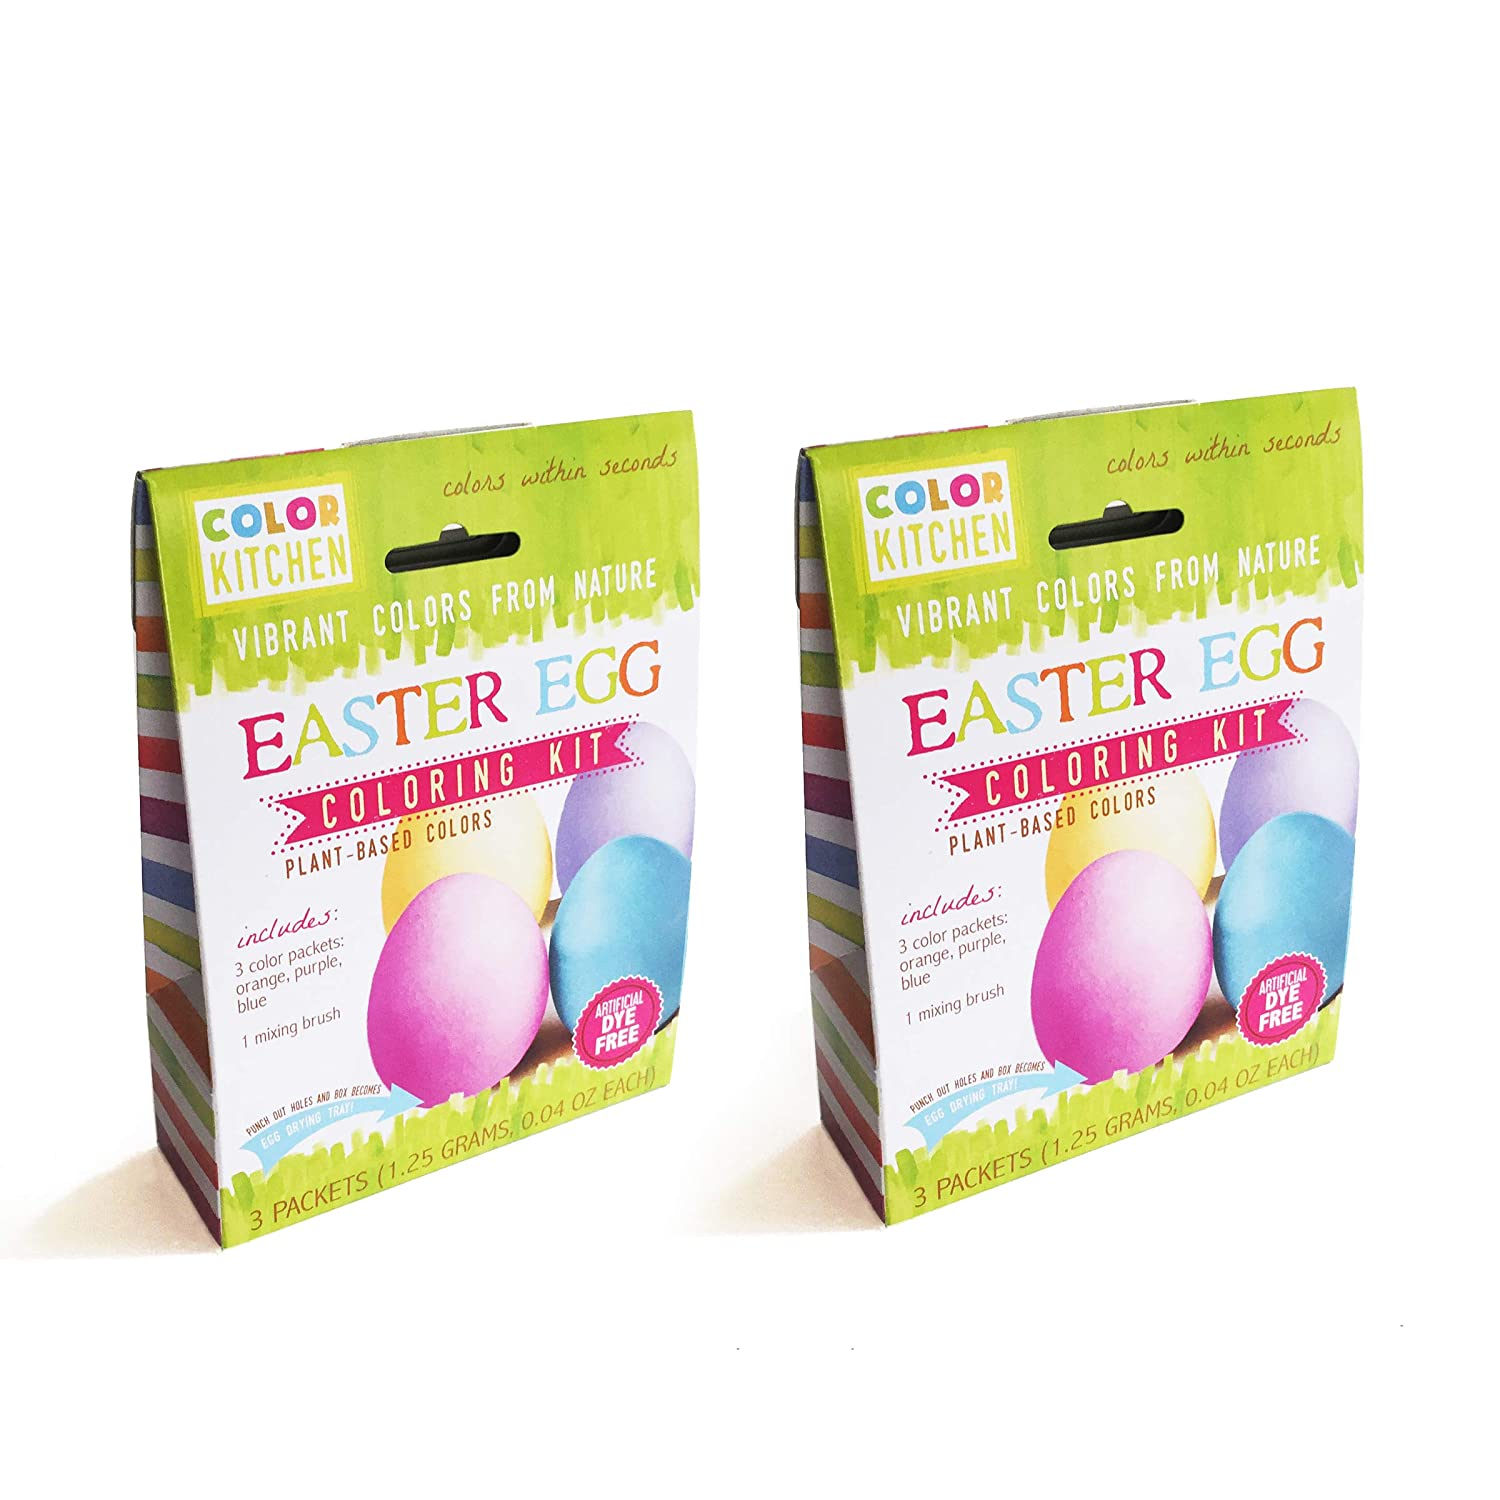 Amazon Com Colorkitchen Easter Egg Coloring Kit 2 Pack Plant Based Naturally Colorful Dye Kit Contains Yellow Orange Blue And Purple Dyes Grocery Gourmet Food,White Wall Stickers For Bedrooms